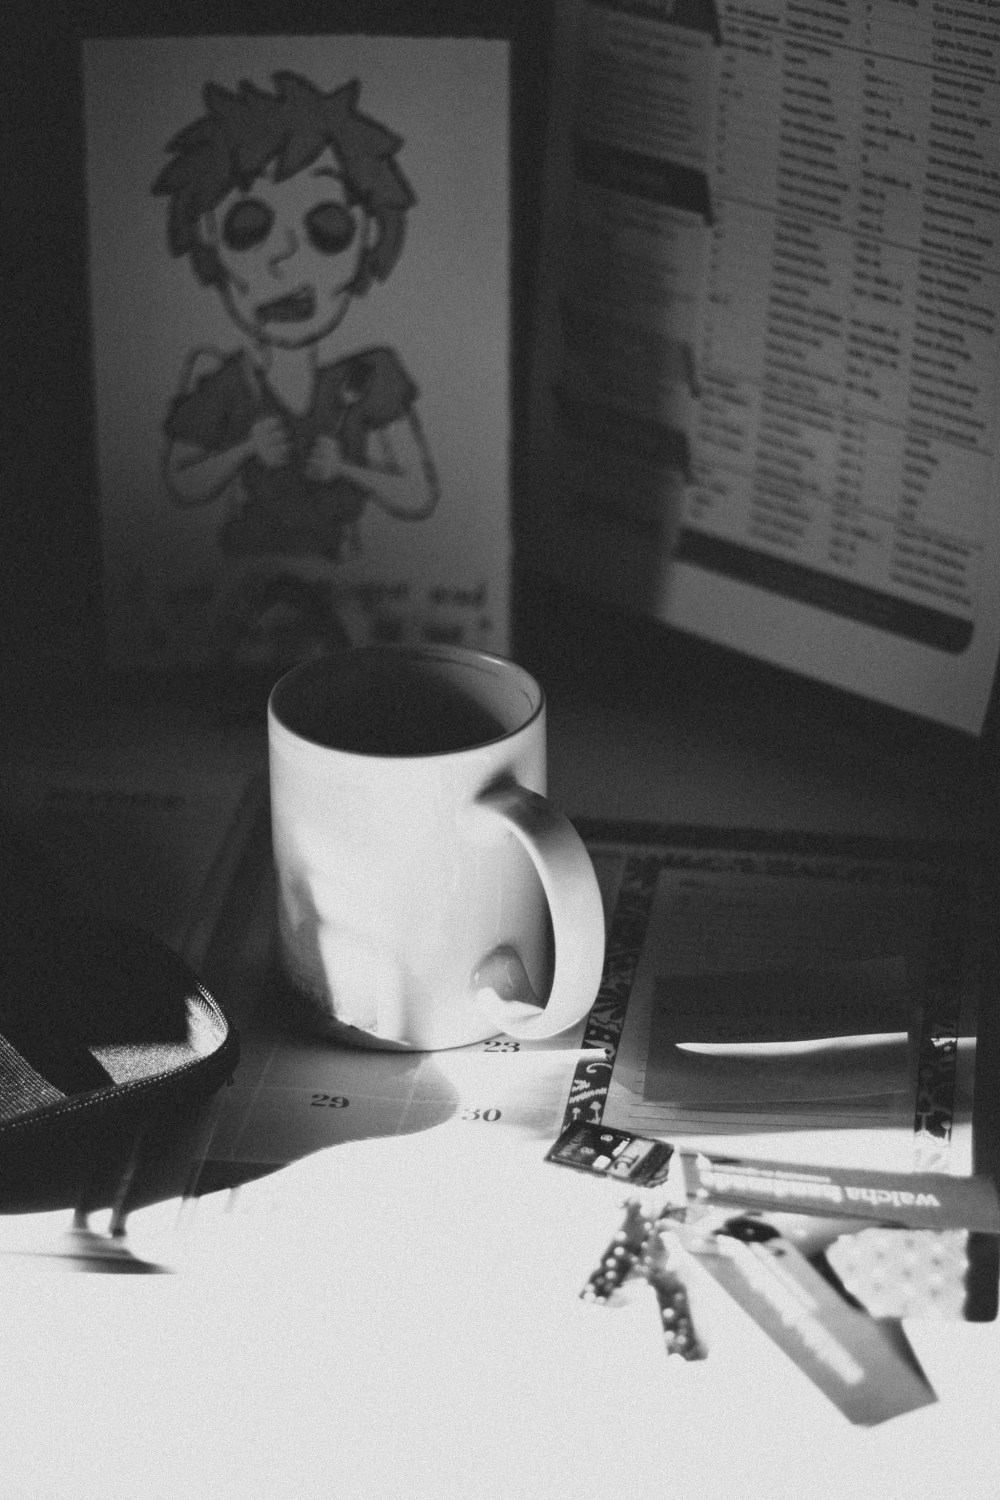 Coffee and morning chaos - there's so much to do on the to-do list... remember to breathe and if it doesn't get done, it will still be there tomorrow.